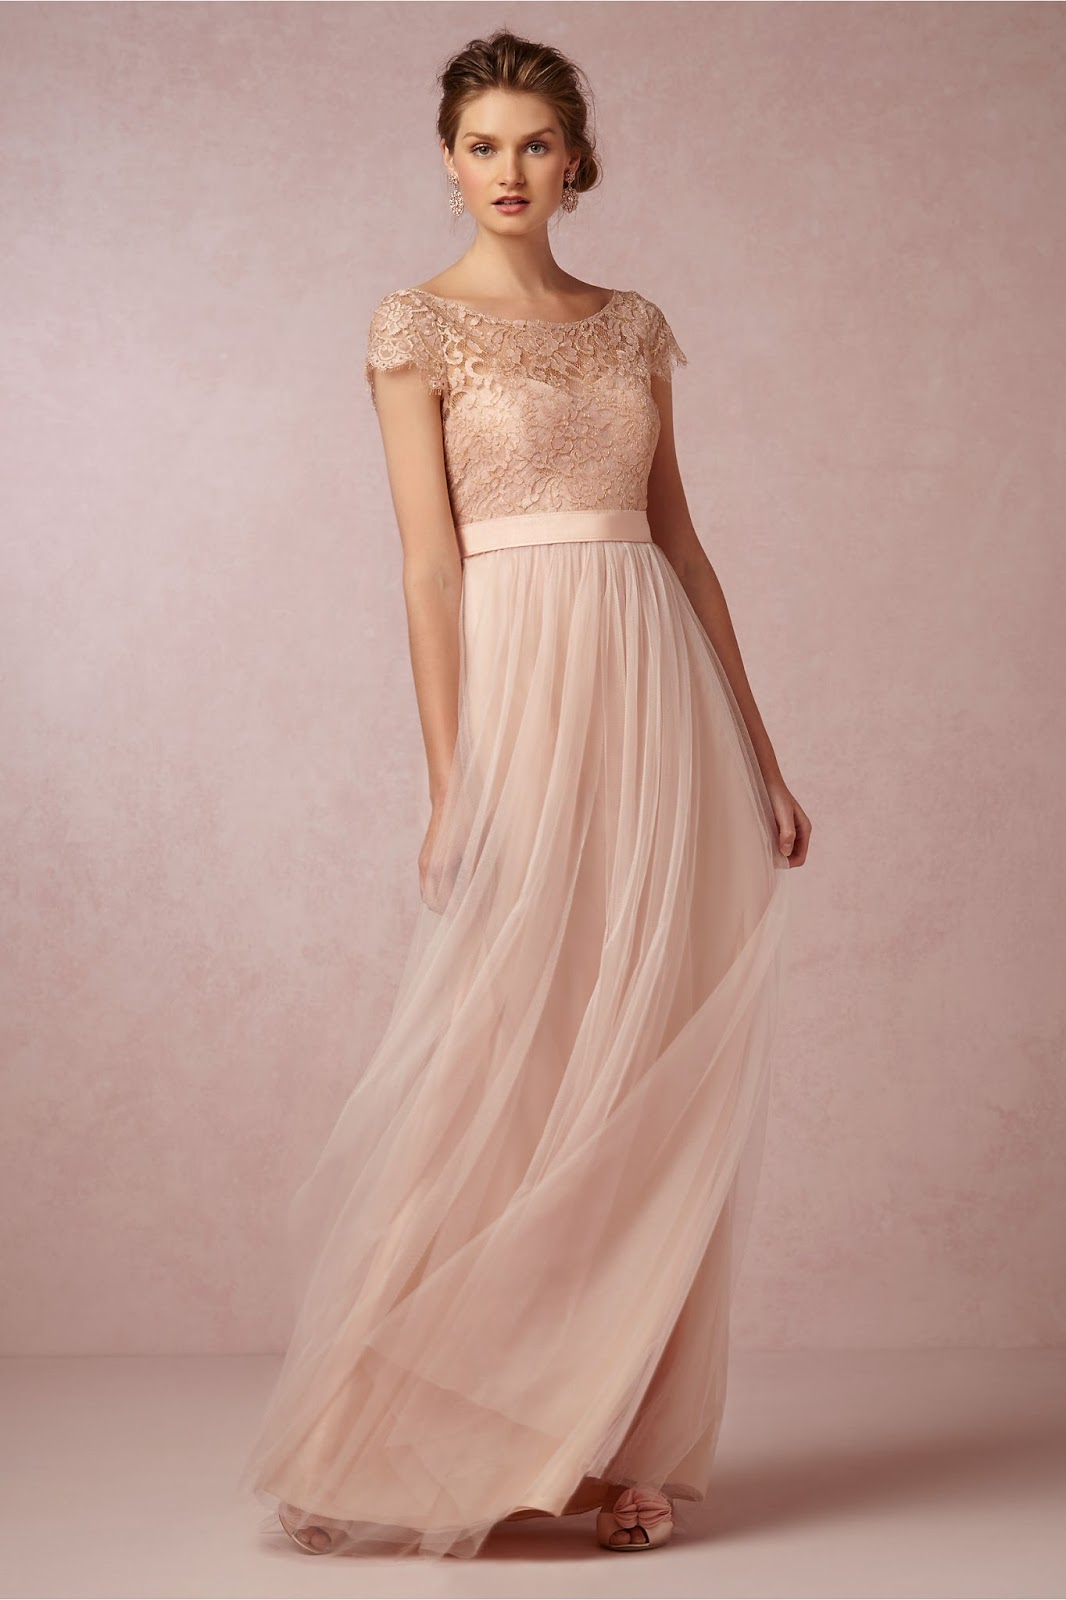 bridesmaid dresses online, cheap gowns online, long dresses online, cocktail dresses online, mother of bride dresses